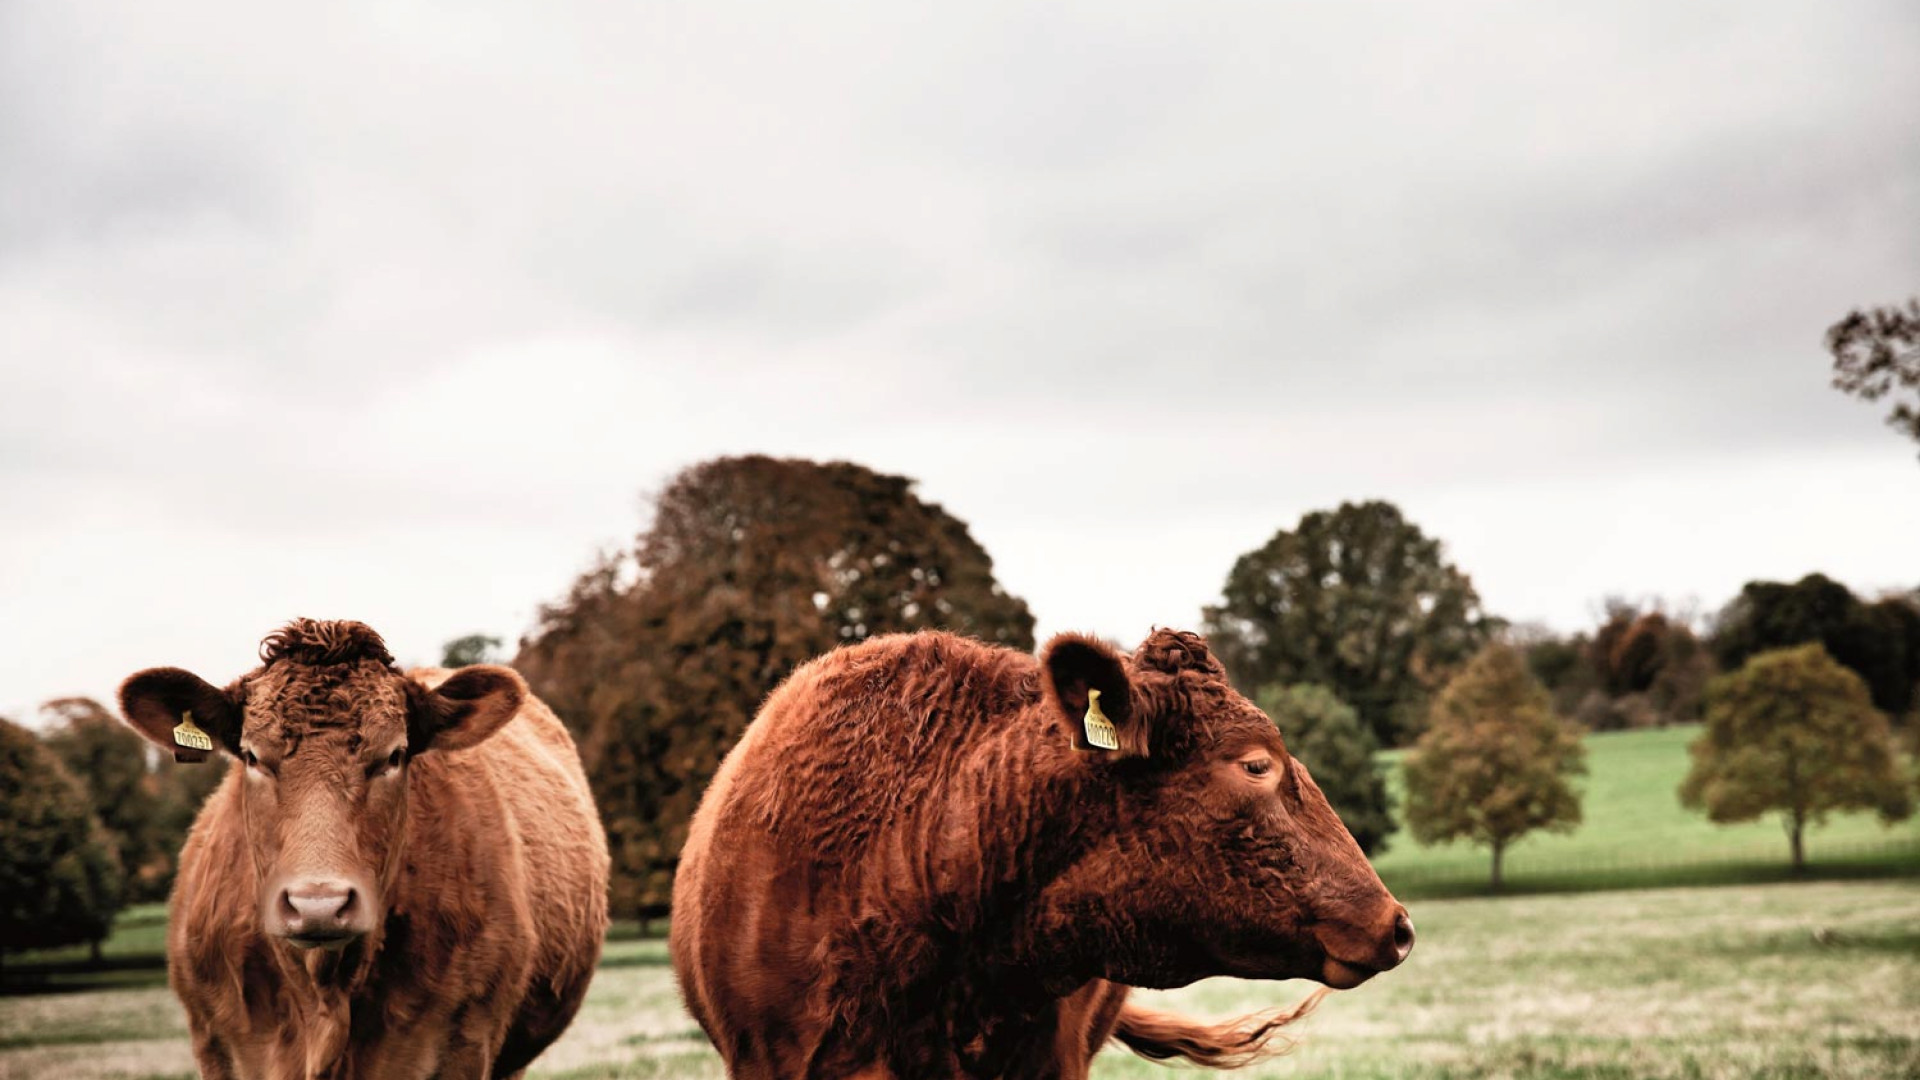 Cows at Daylesford, the Cotswolds